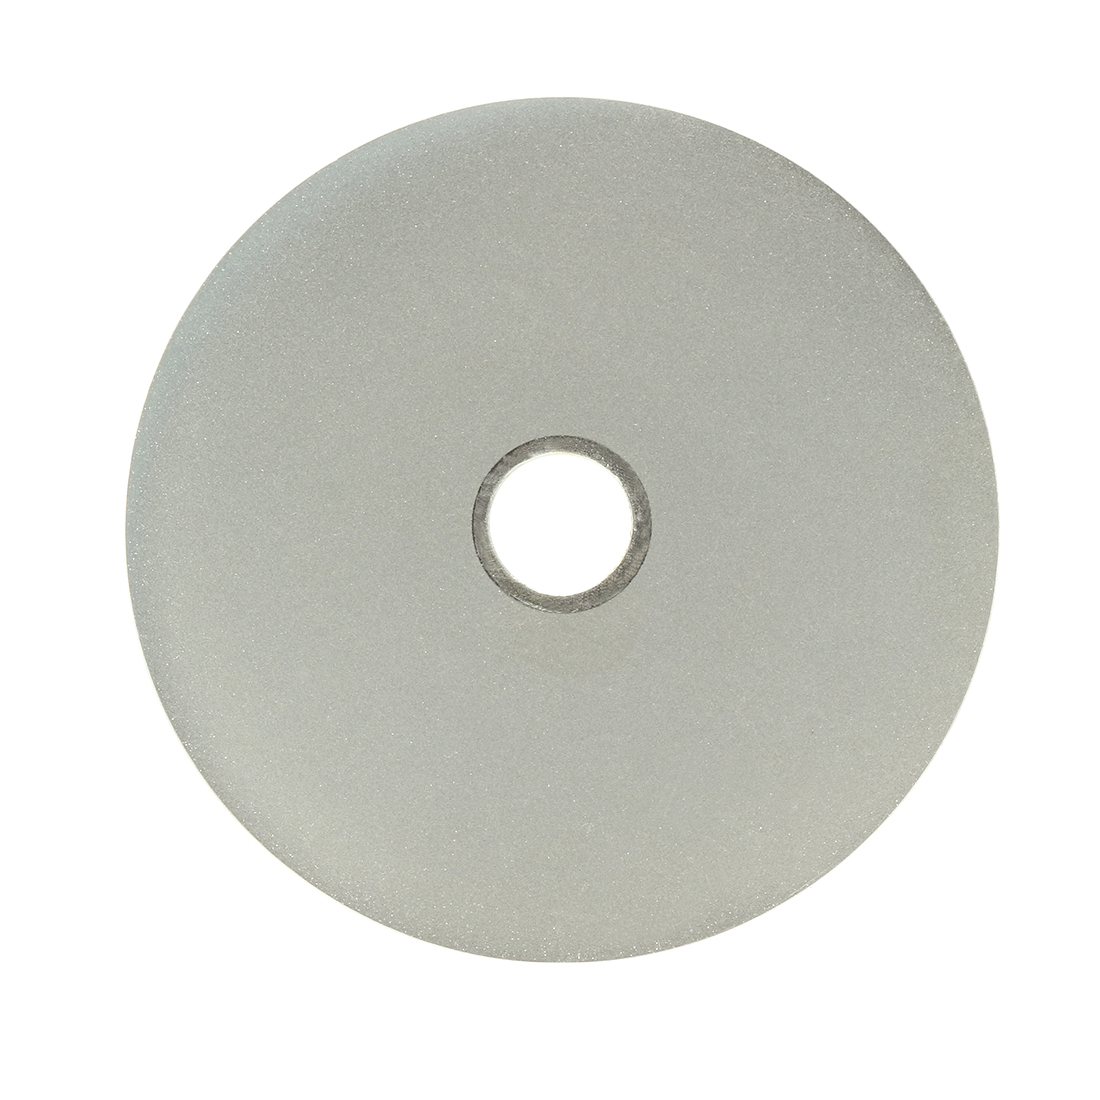 100mm 4-inch Grit 2500 Diamond Coated Flat Lap Disk Wheel Grinding Sanding Disc